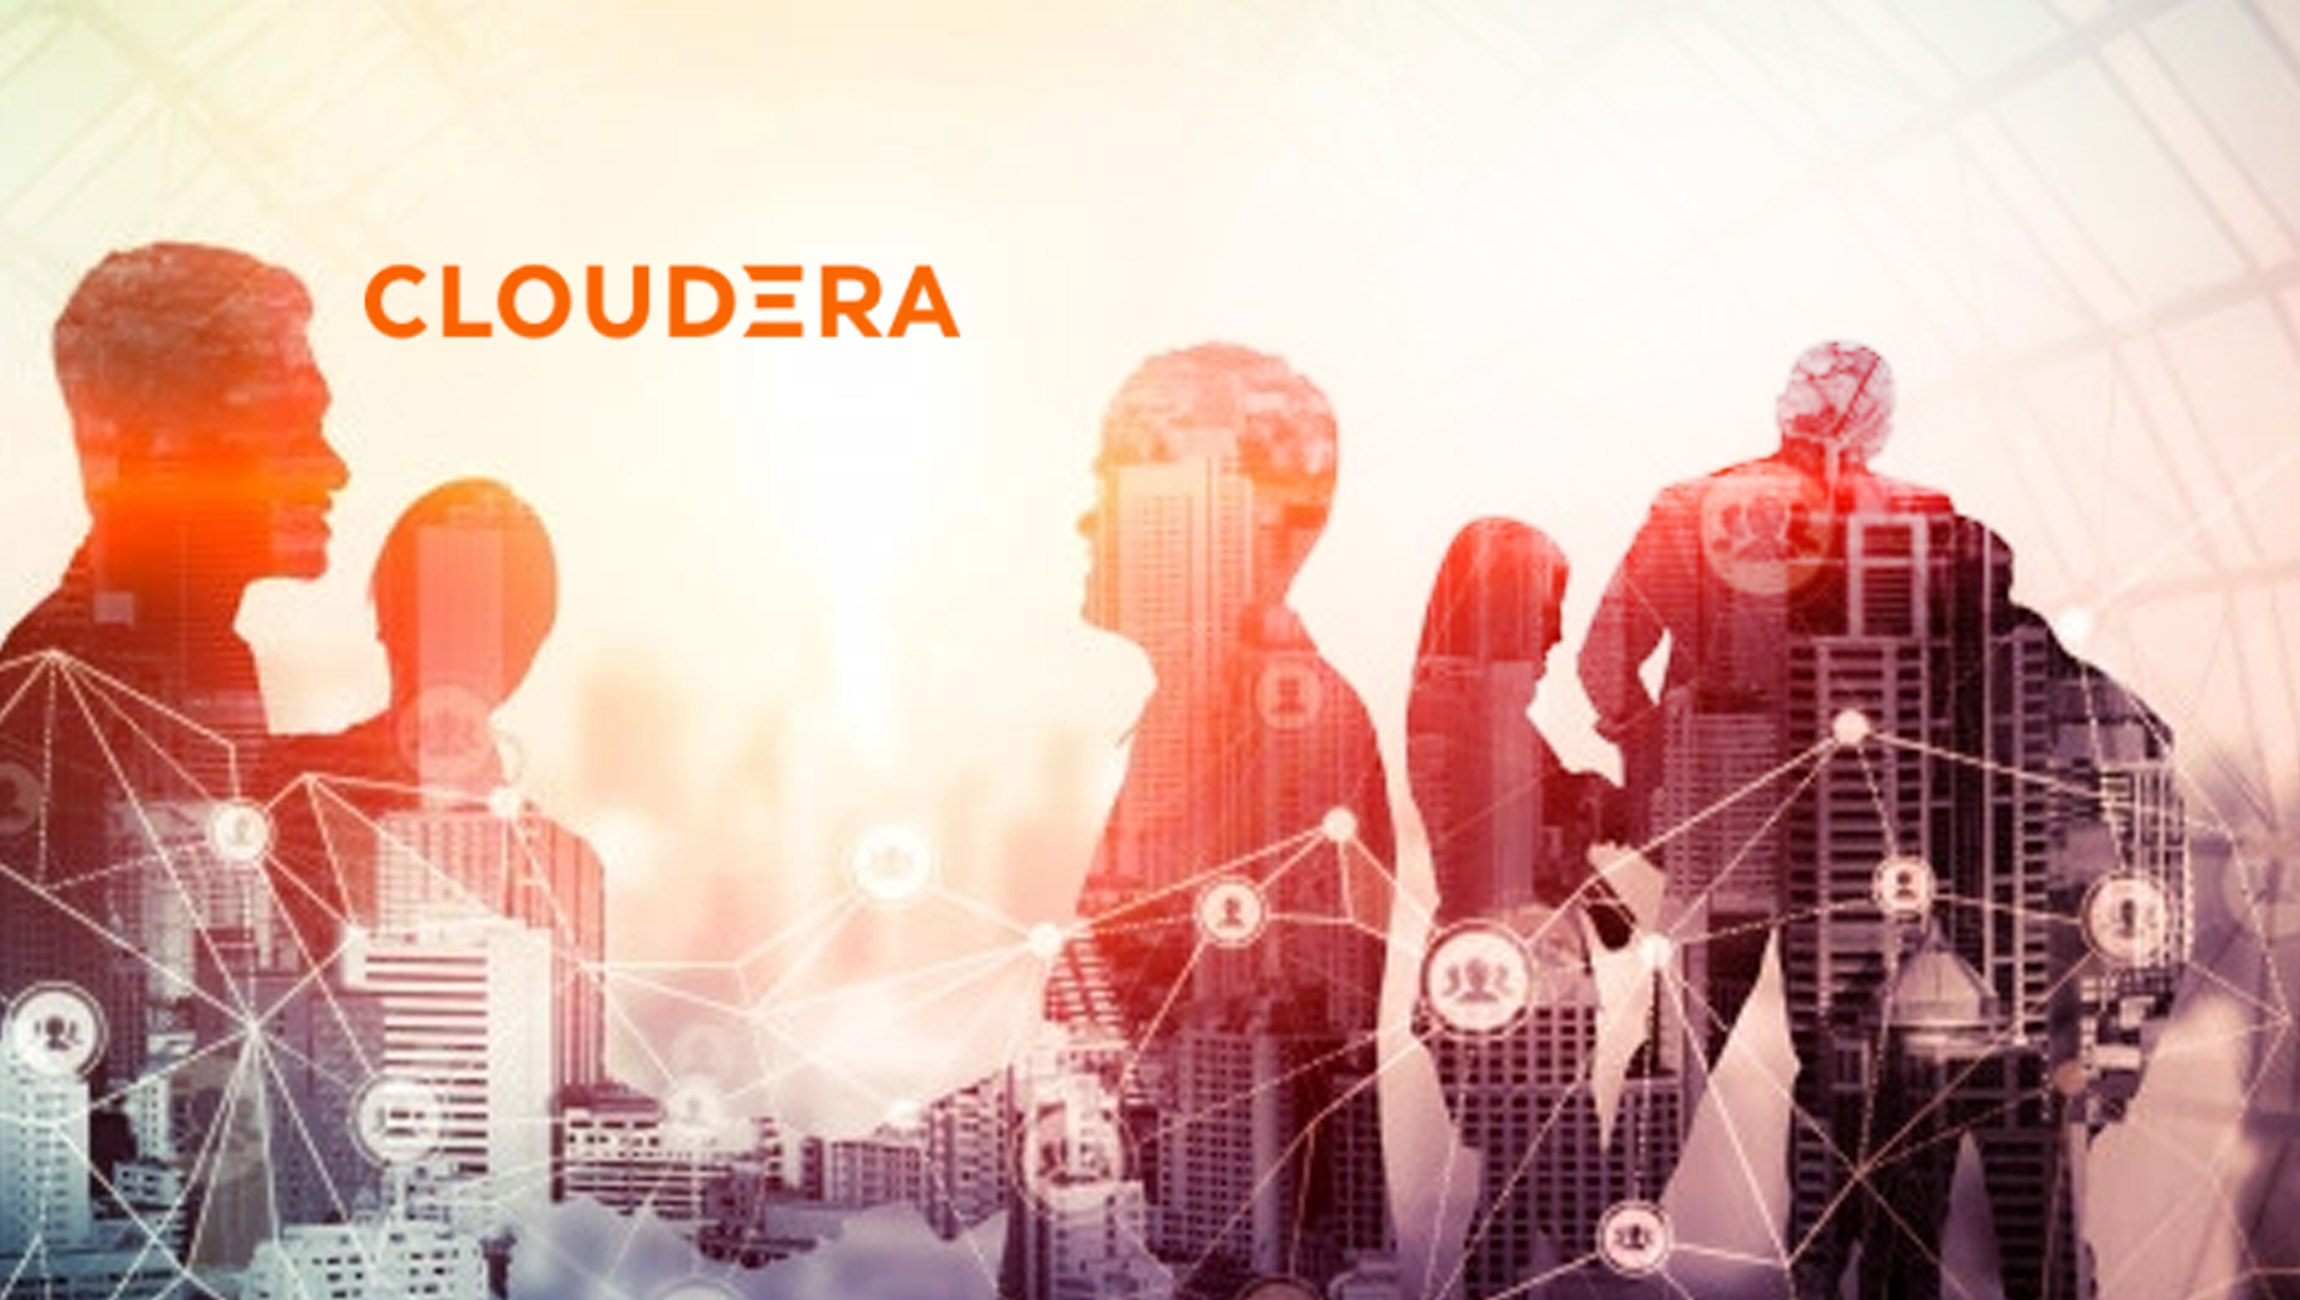 Cloudera Enters into Definitive Agreement to be Acquired by Clayton, Dubilier & Rice and KKR for $5.3 Billion